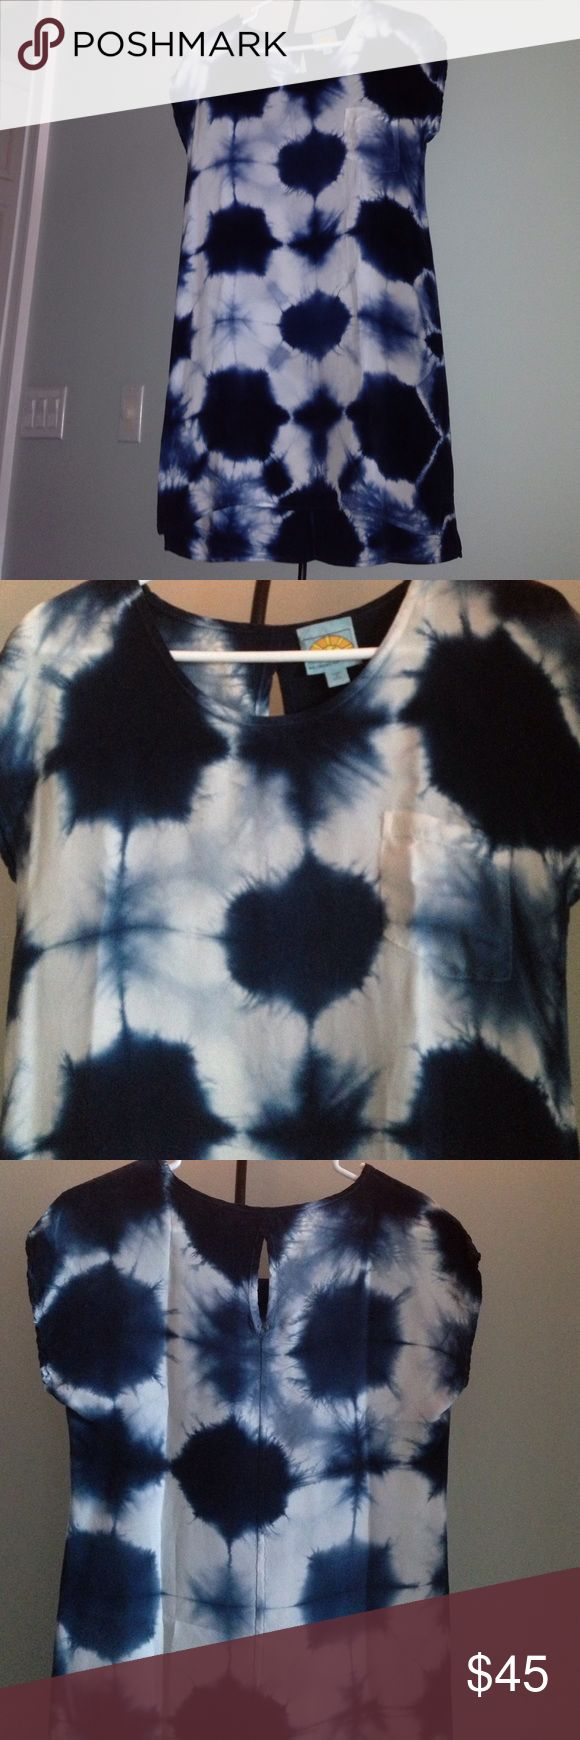 """C & C California Tie Dye Tee Shirt Dress Details: This royal blue tie-dye beauty is made from a fabric called """"Cupro-Bemberg.""""  This high-quality fabric produced in Japan is breathable, light, durable, and with a silky touch that looks and feels great.  Bemberg is made from cotton that has the advantage of wicking sweat and humidity away from the body. It has a left front pocket and a key-whole opening in the  back. Size: XS Measurements:  31"""" from top to bottom of hem in front; 35"""" in back…"""